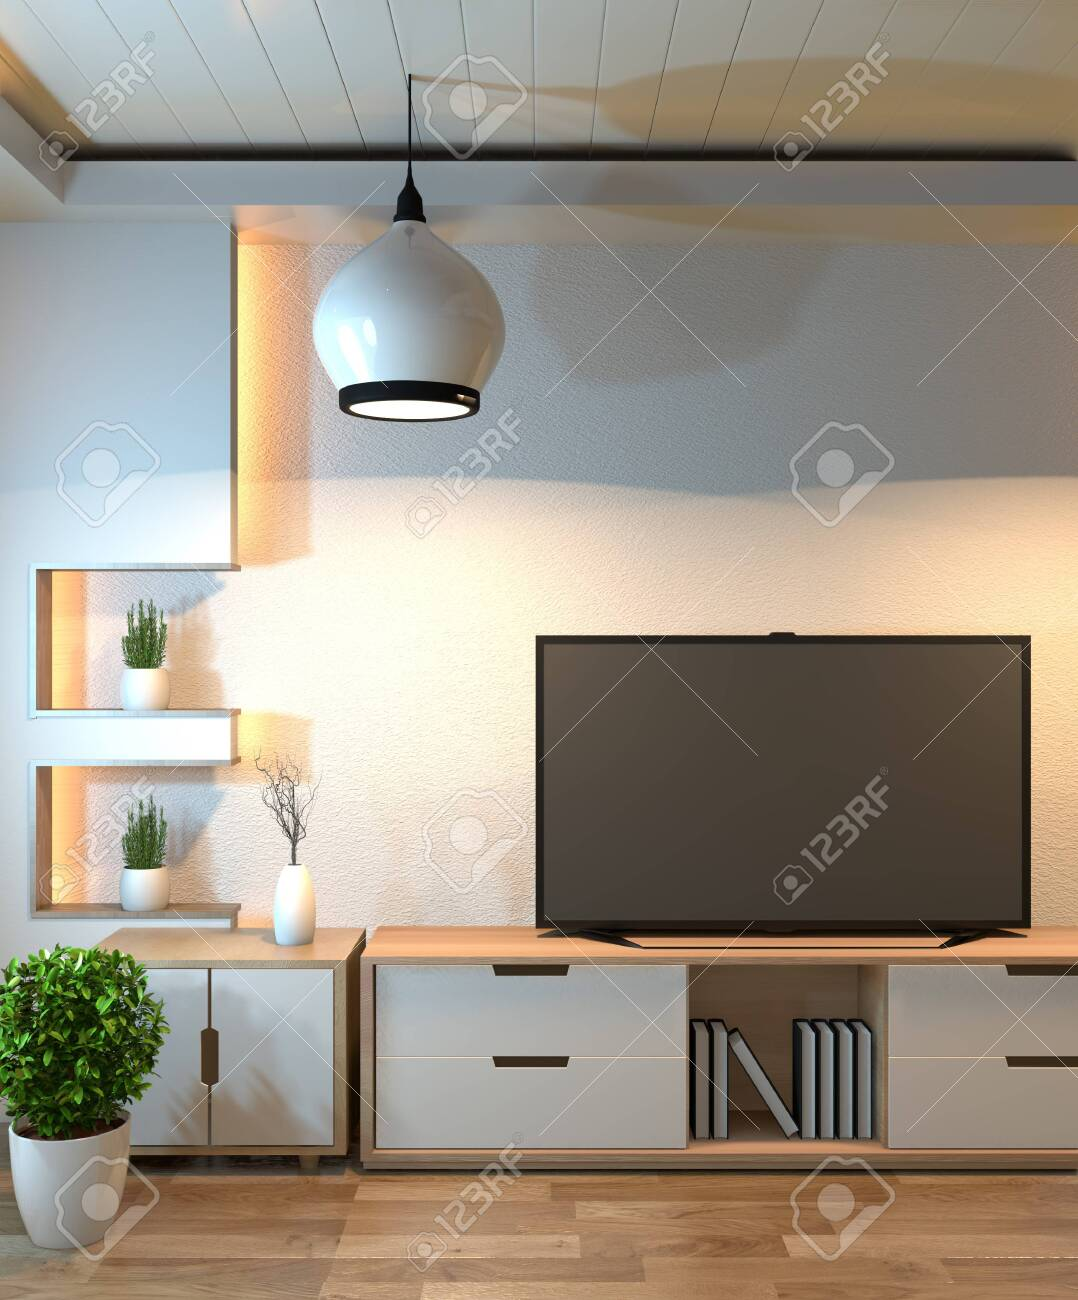 Interior Design Modern Living Room With Smart Tv Table Lamp Stock Photo Picture And Royalty Free Image Image 126633961